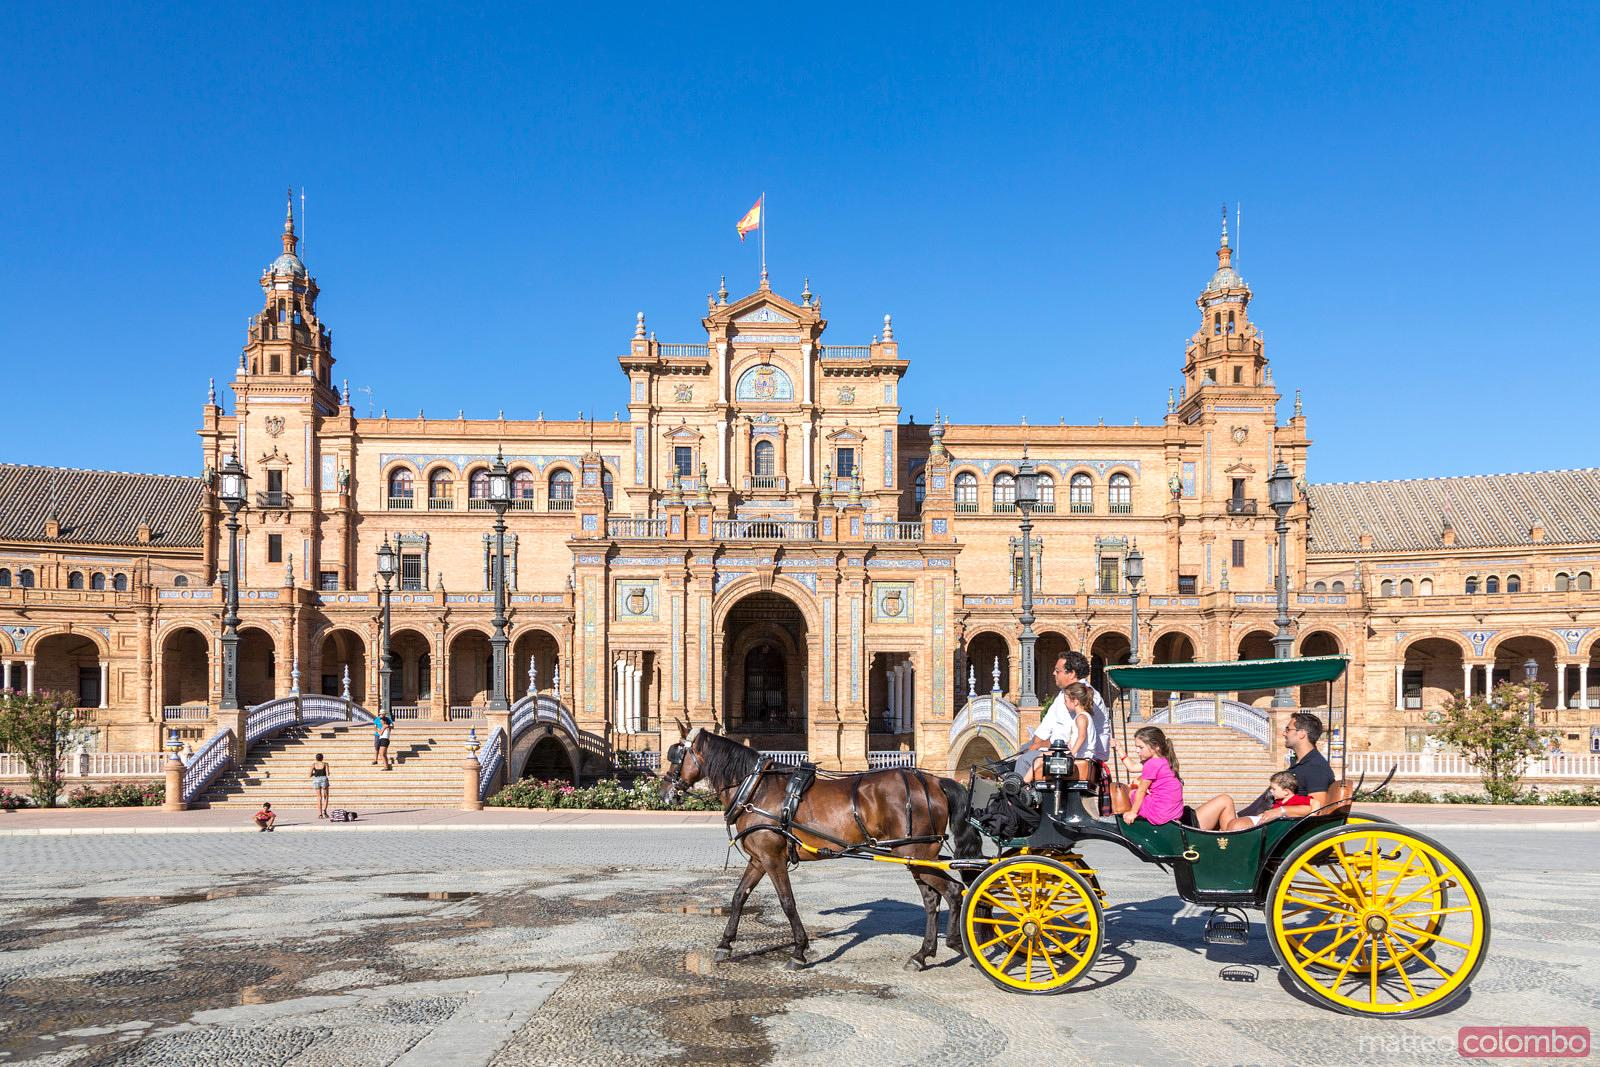 Horse cart with tourists in plaza de Espana, Sevilla, Spain